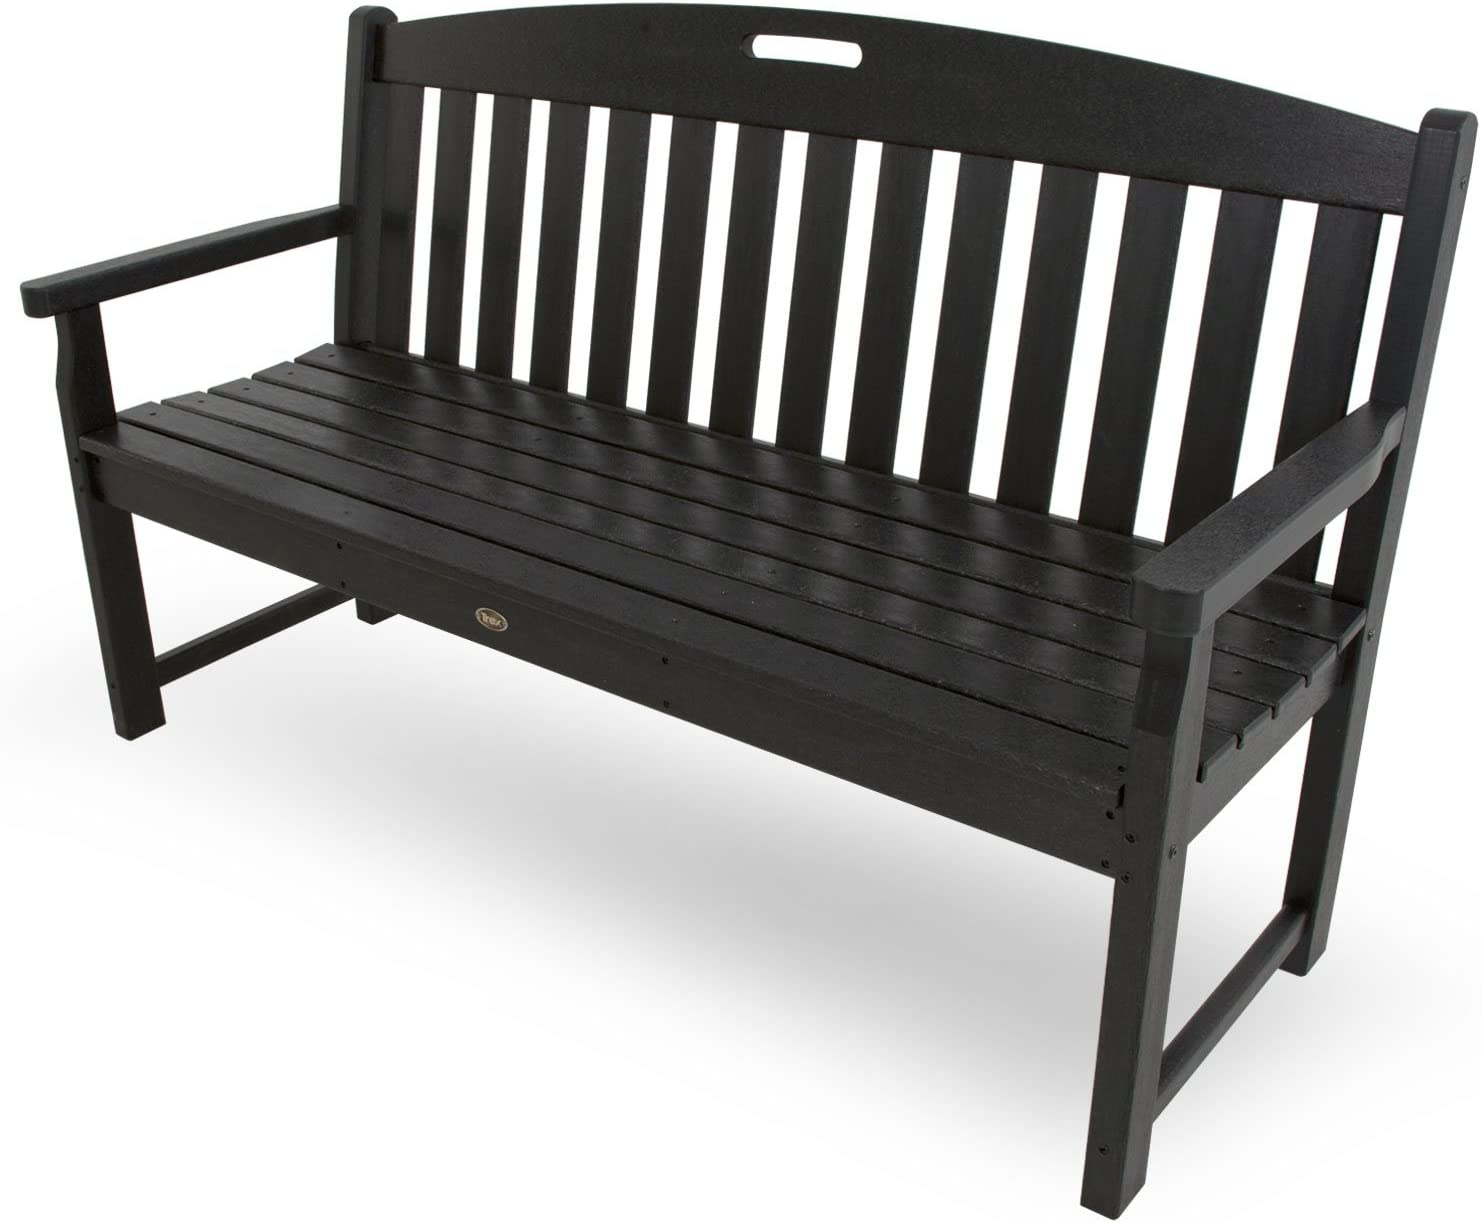 Trex Outdoor Furniture TXB60CB 60-Inch Yacht Club Bench, Charcoal Black